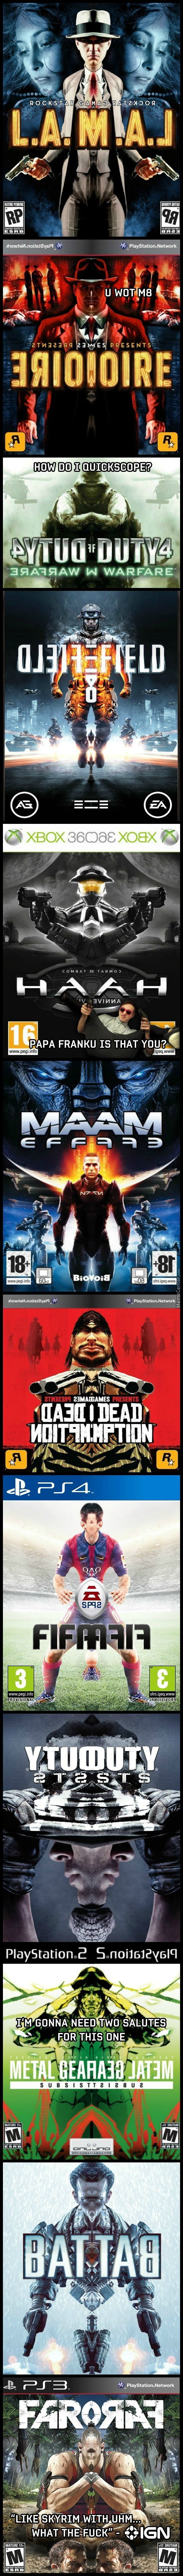 Videogame Covers Mirrored